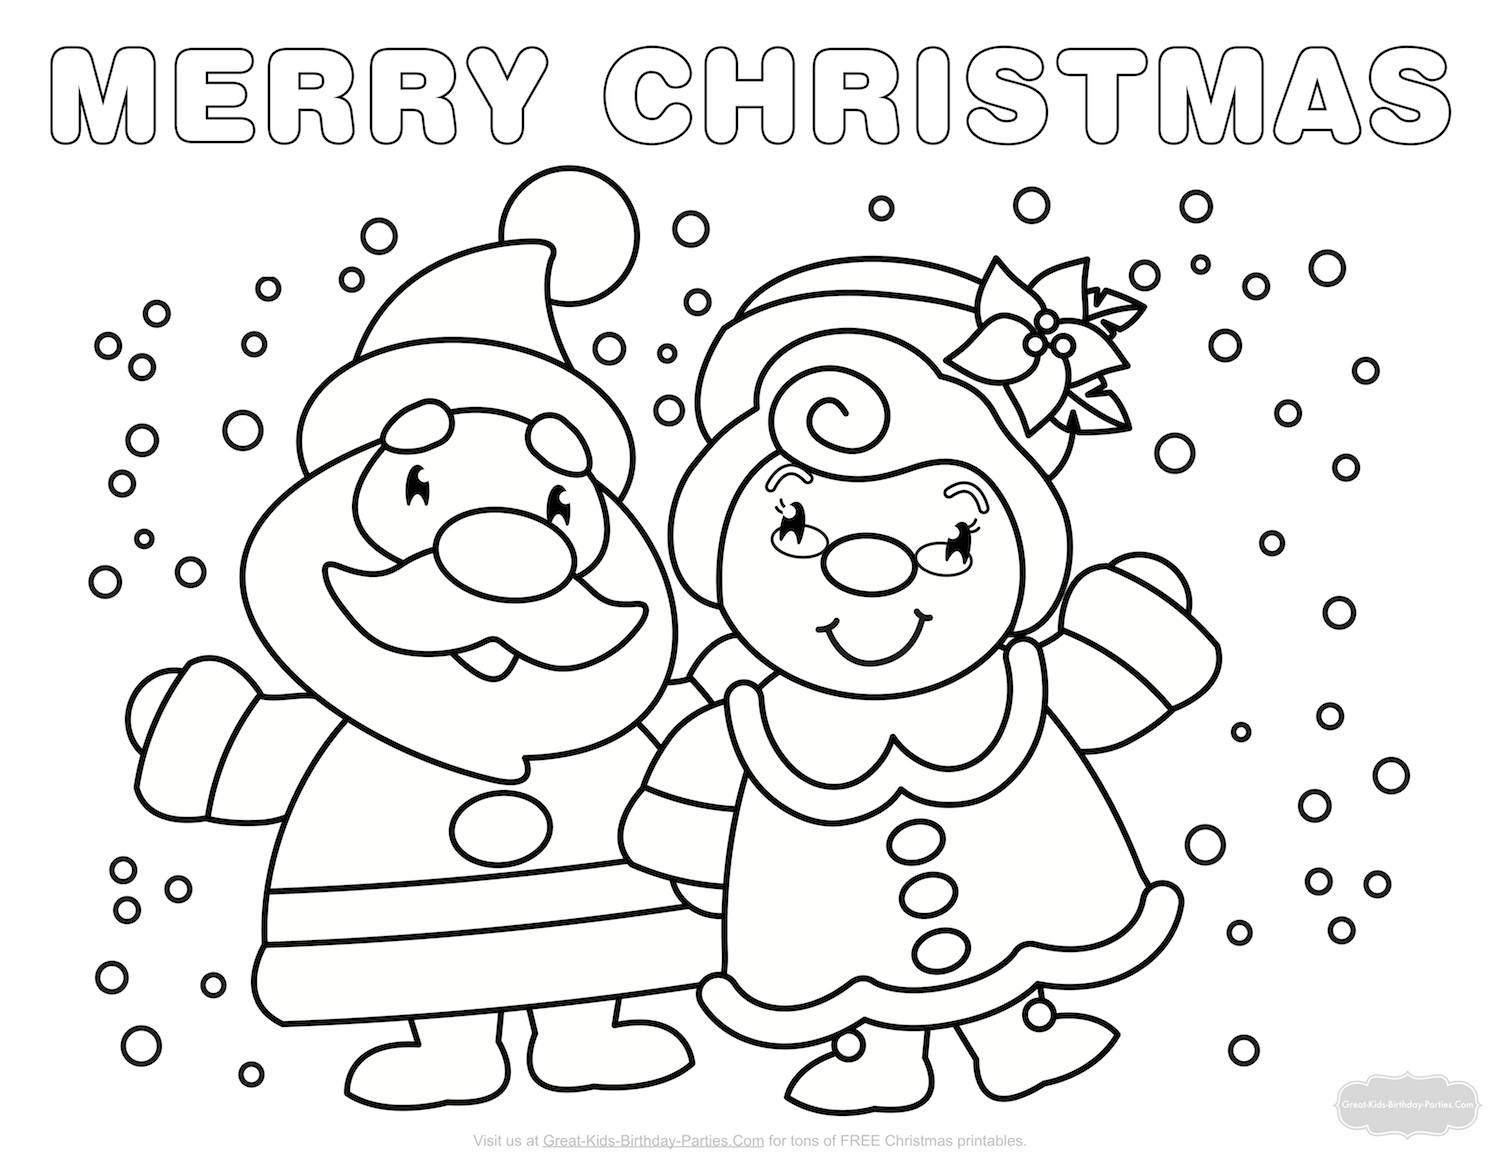 merry christmas coloring pages for toddlers